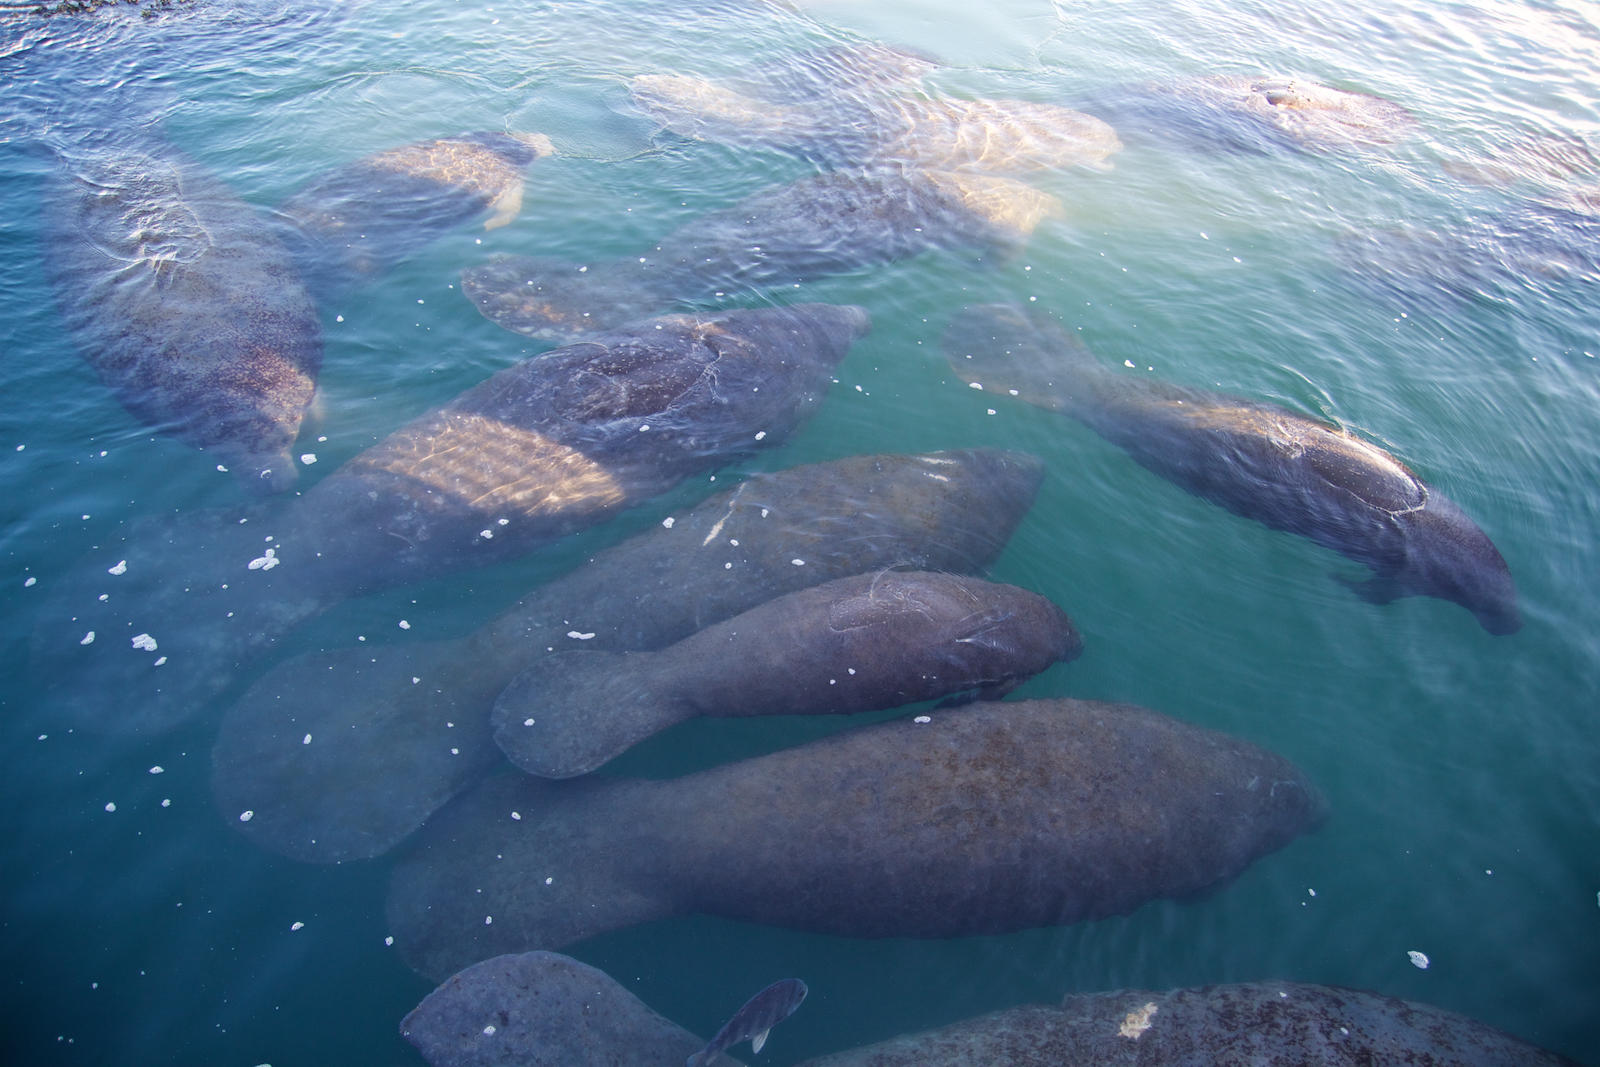 Manatees Huddle Together For Warmth At The Fpl Manatee Lagoon In Riviera Beach On Jan 18 2018